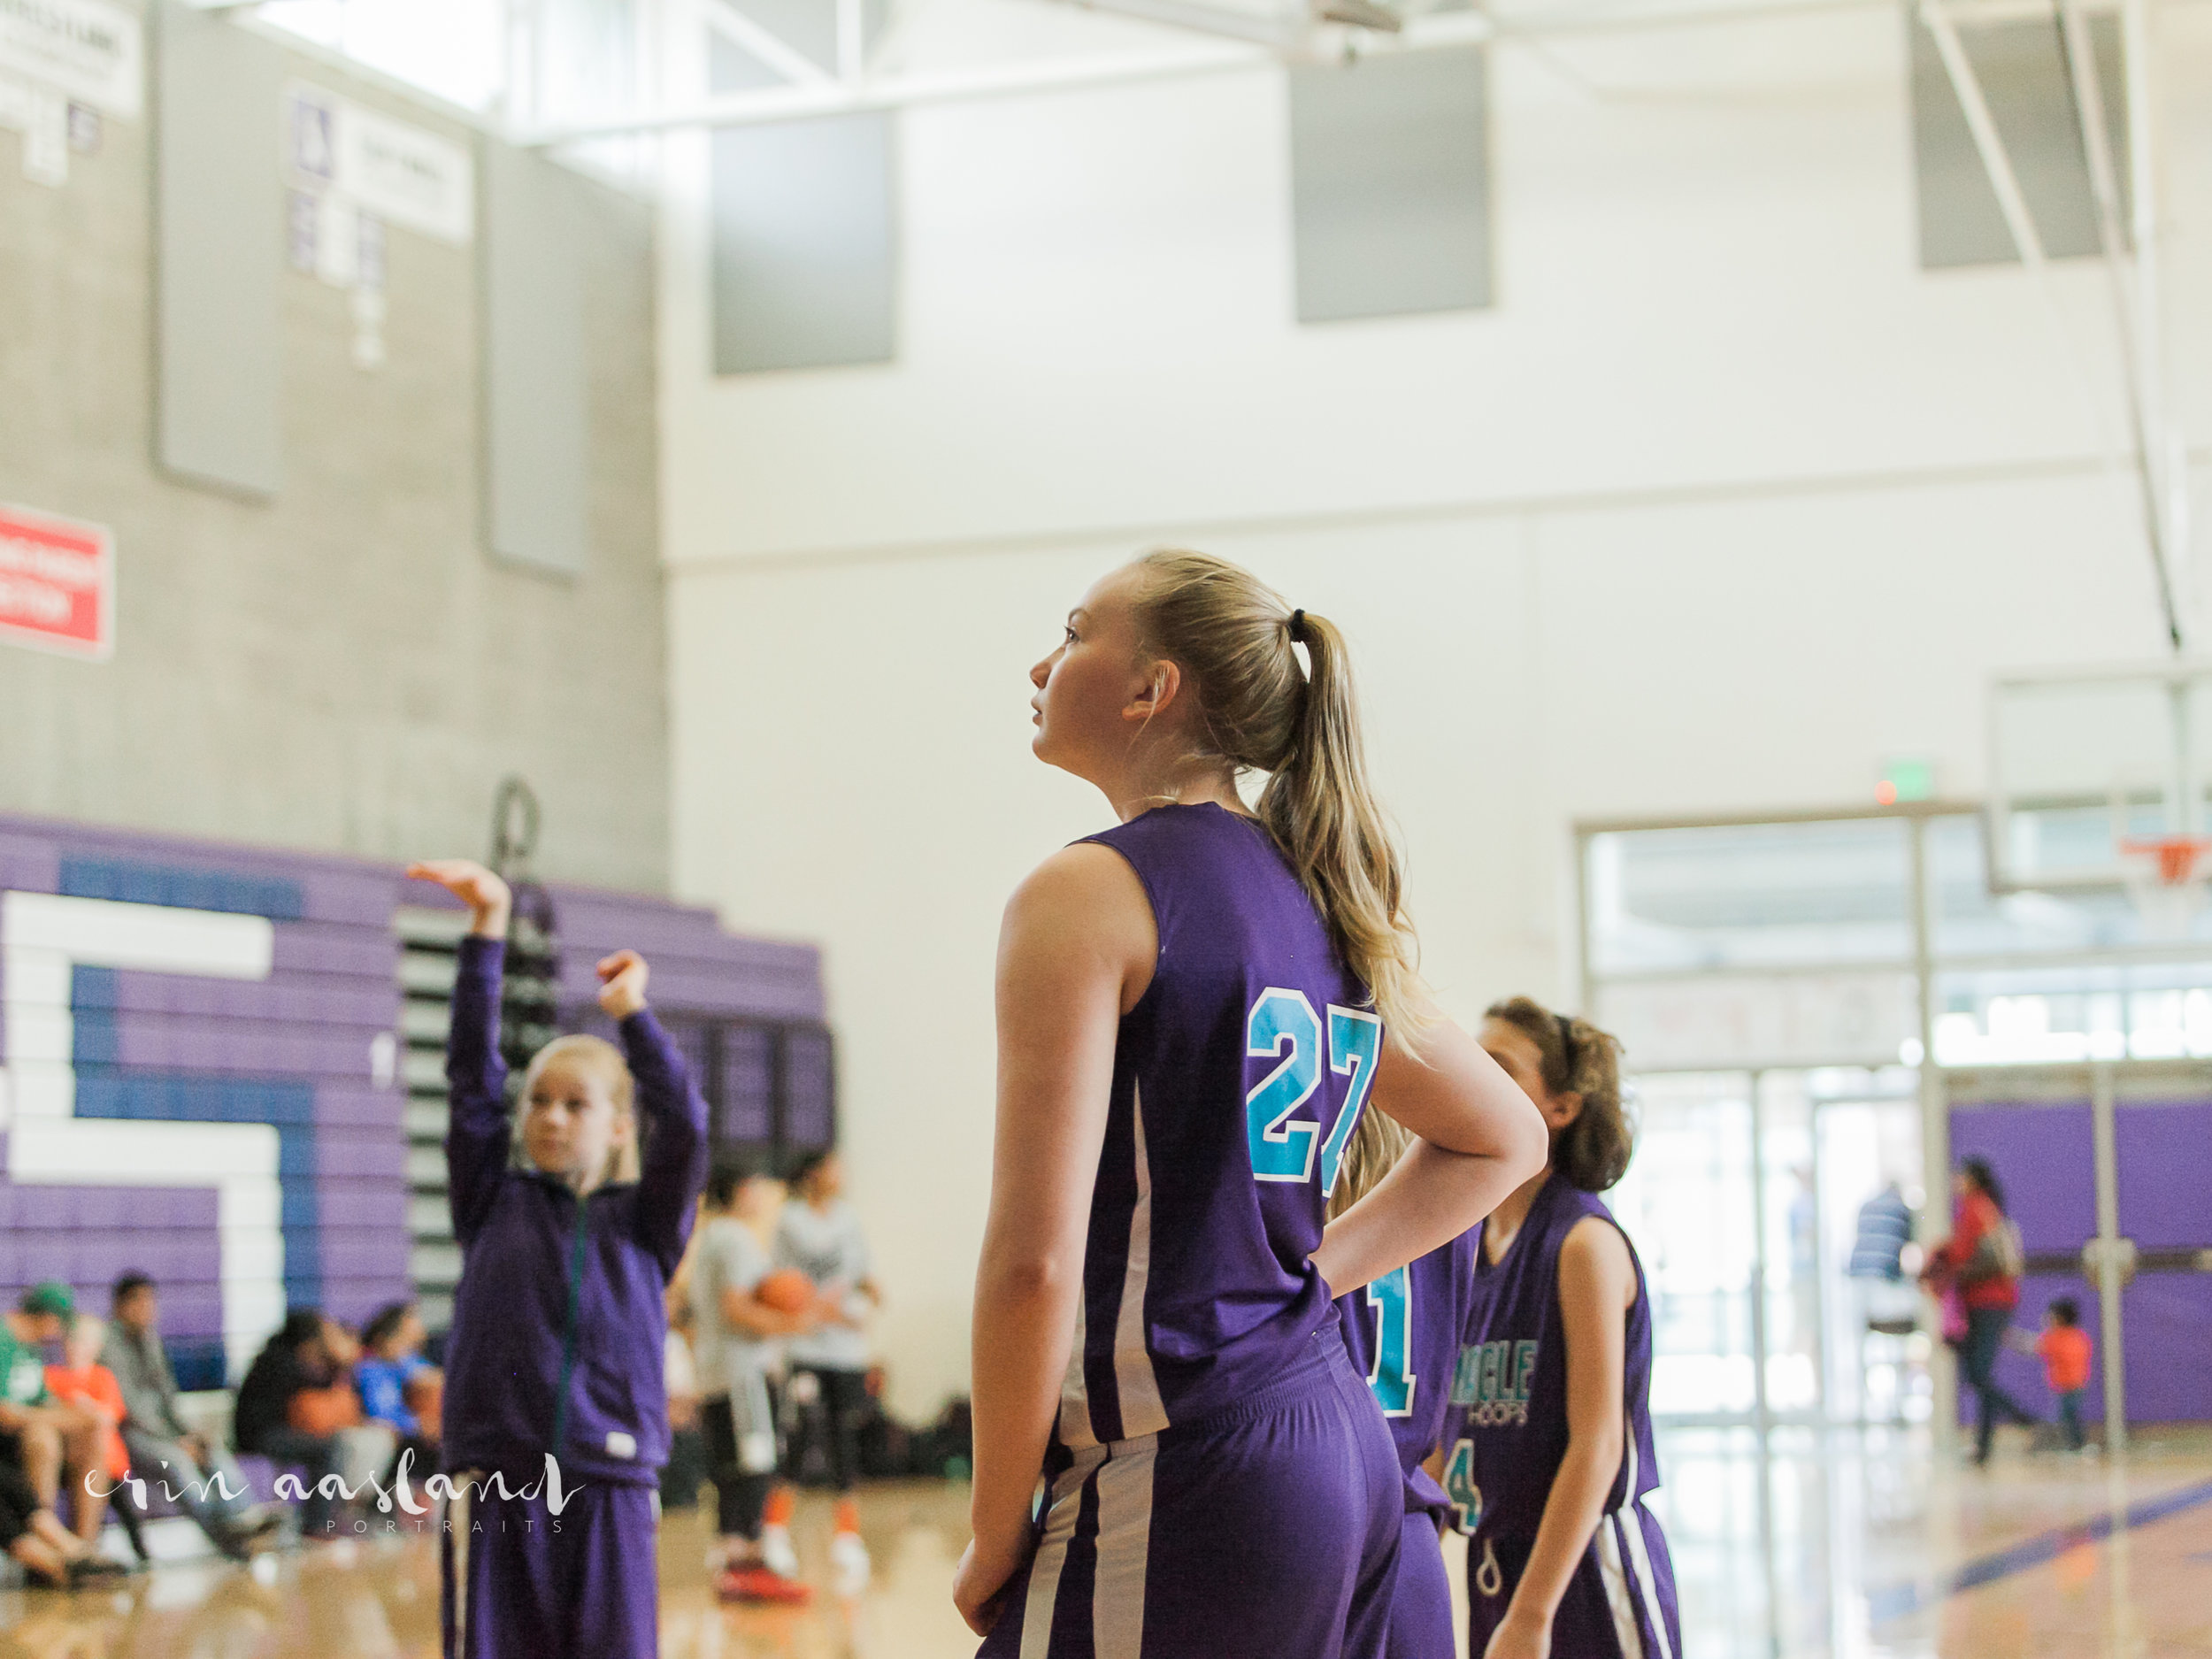 I have so many action shots of her, but this is one of my favorites... the lighting, the profile, the whole moment of it... it's my tough girl at her favorite place, the court.